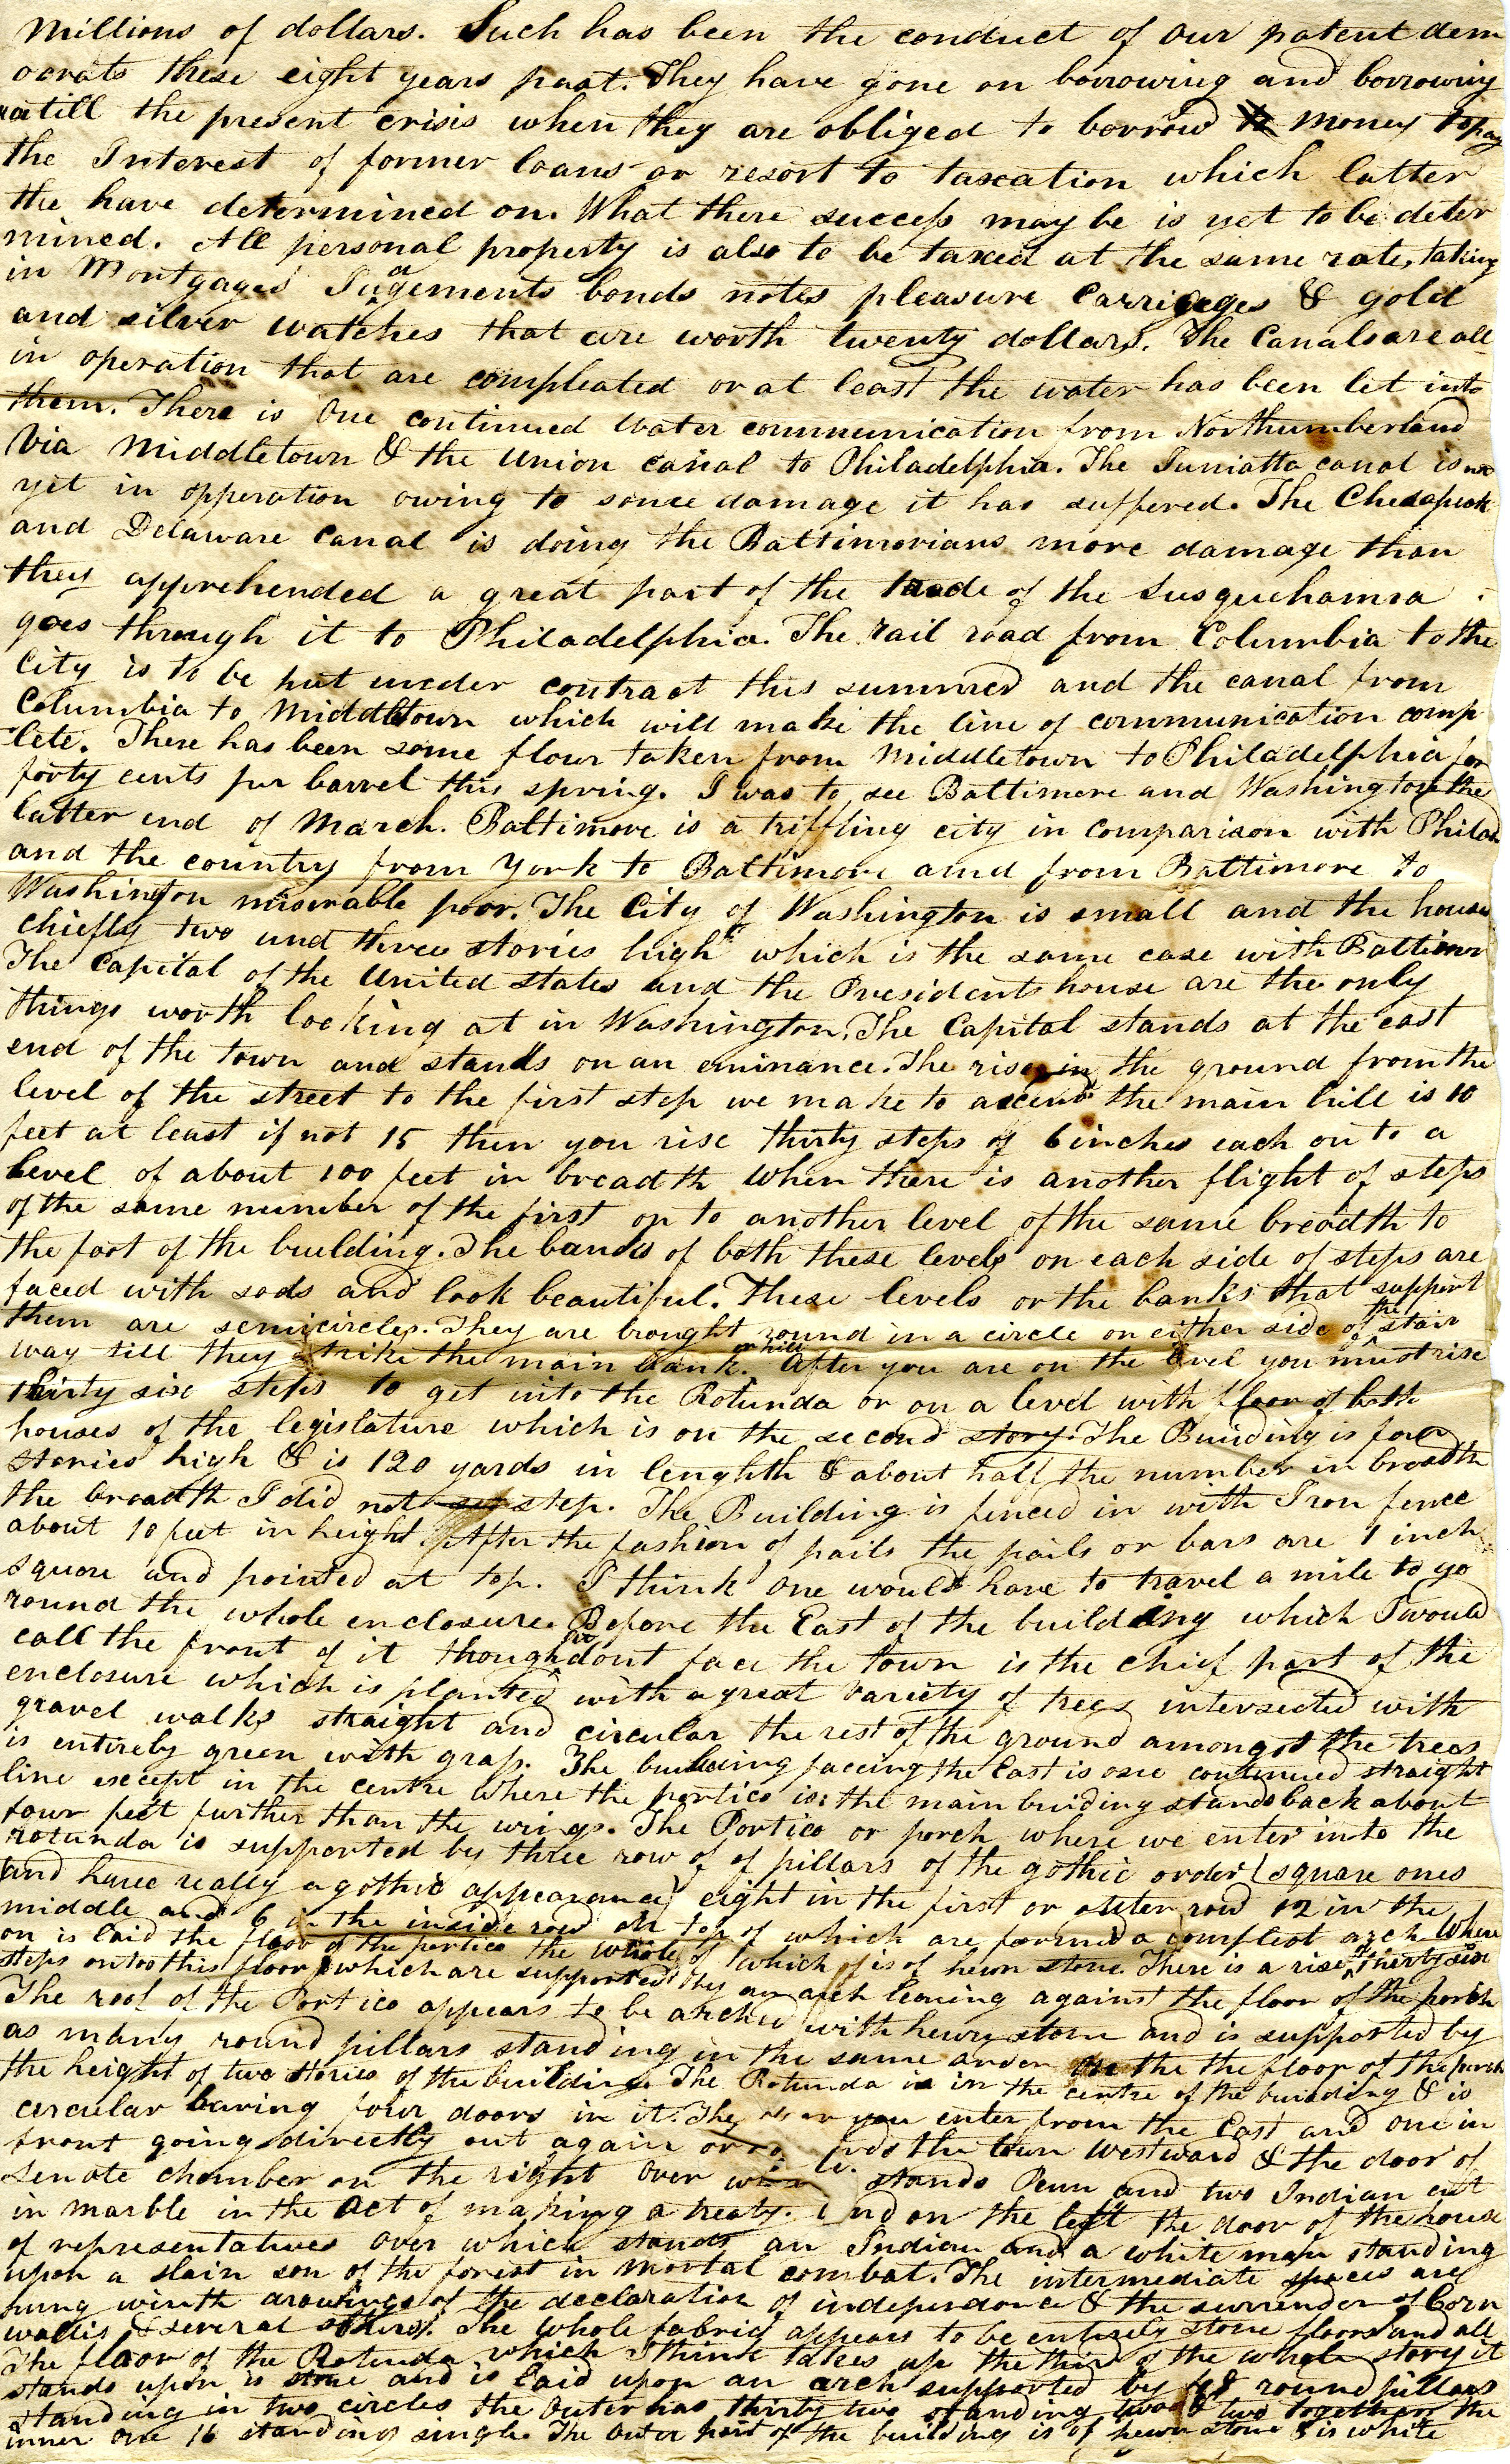 Letter From William Geddes to John Geddes, April 14, 1831 image